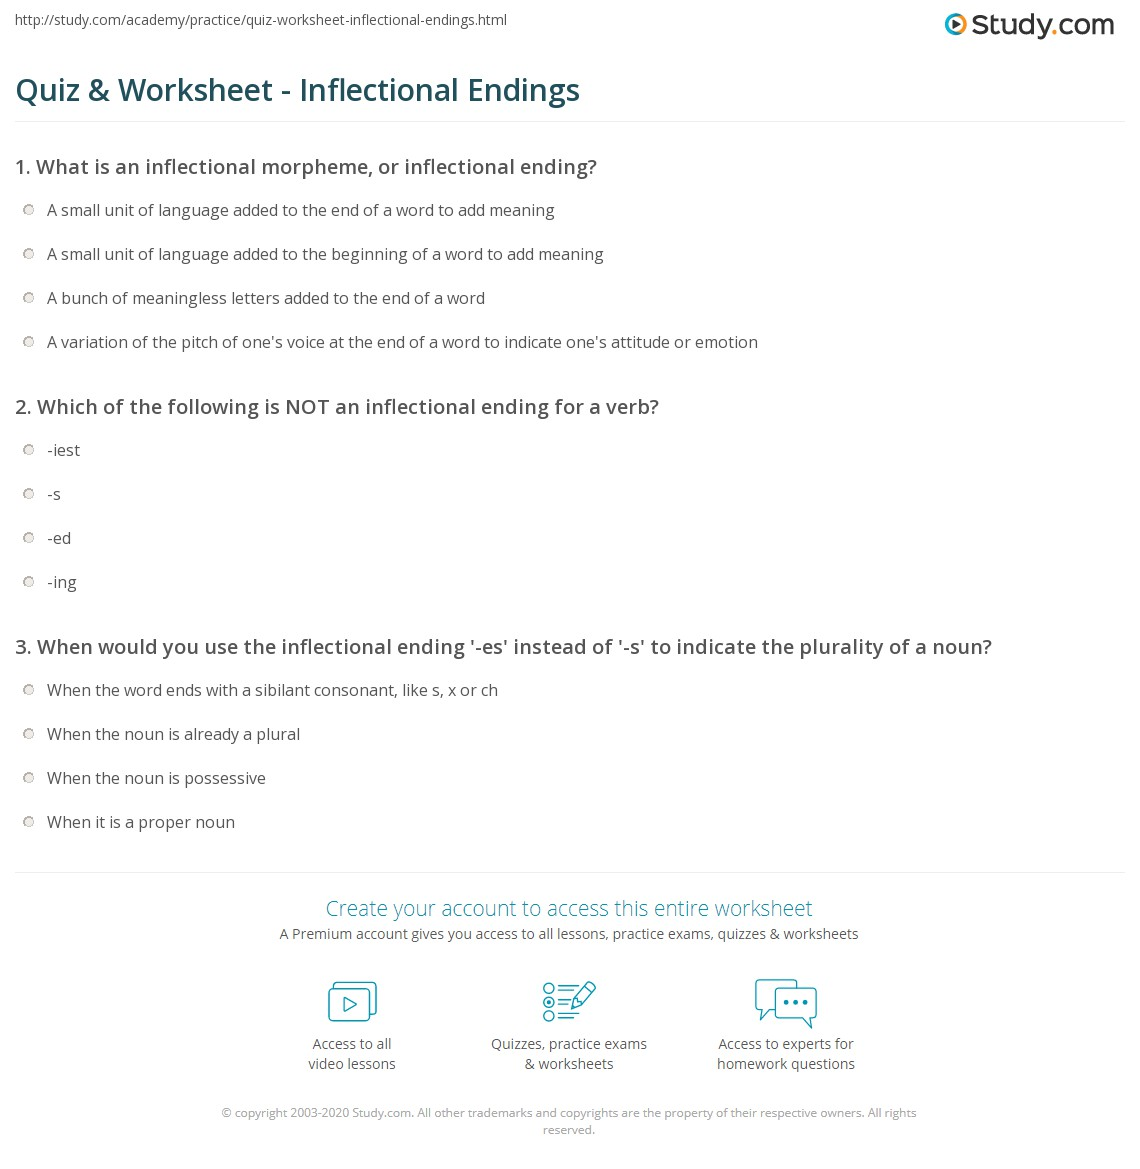 Worksheets Inflectional Endings Worksheet quiz worksheet inflectional endings study com print definition examples worksheet